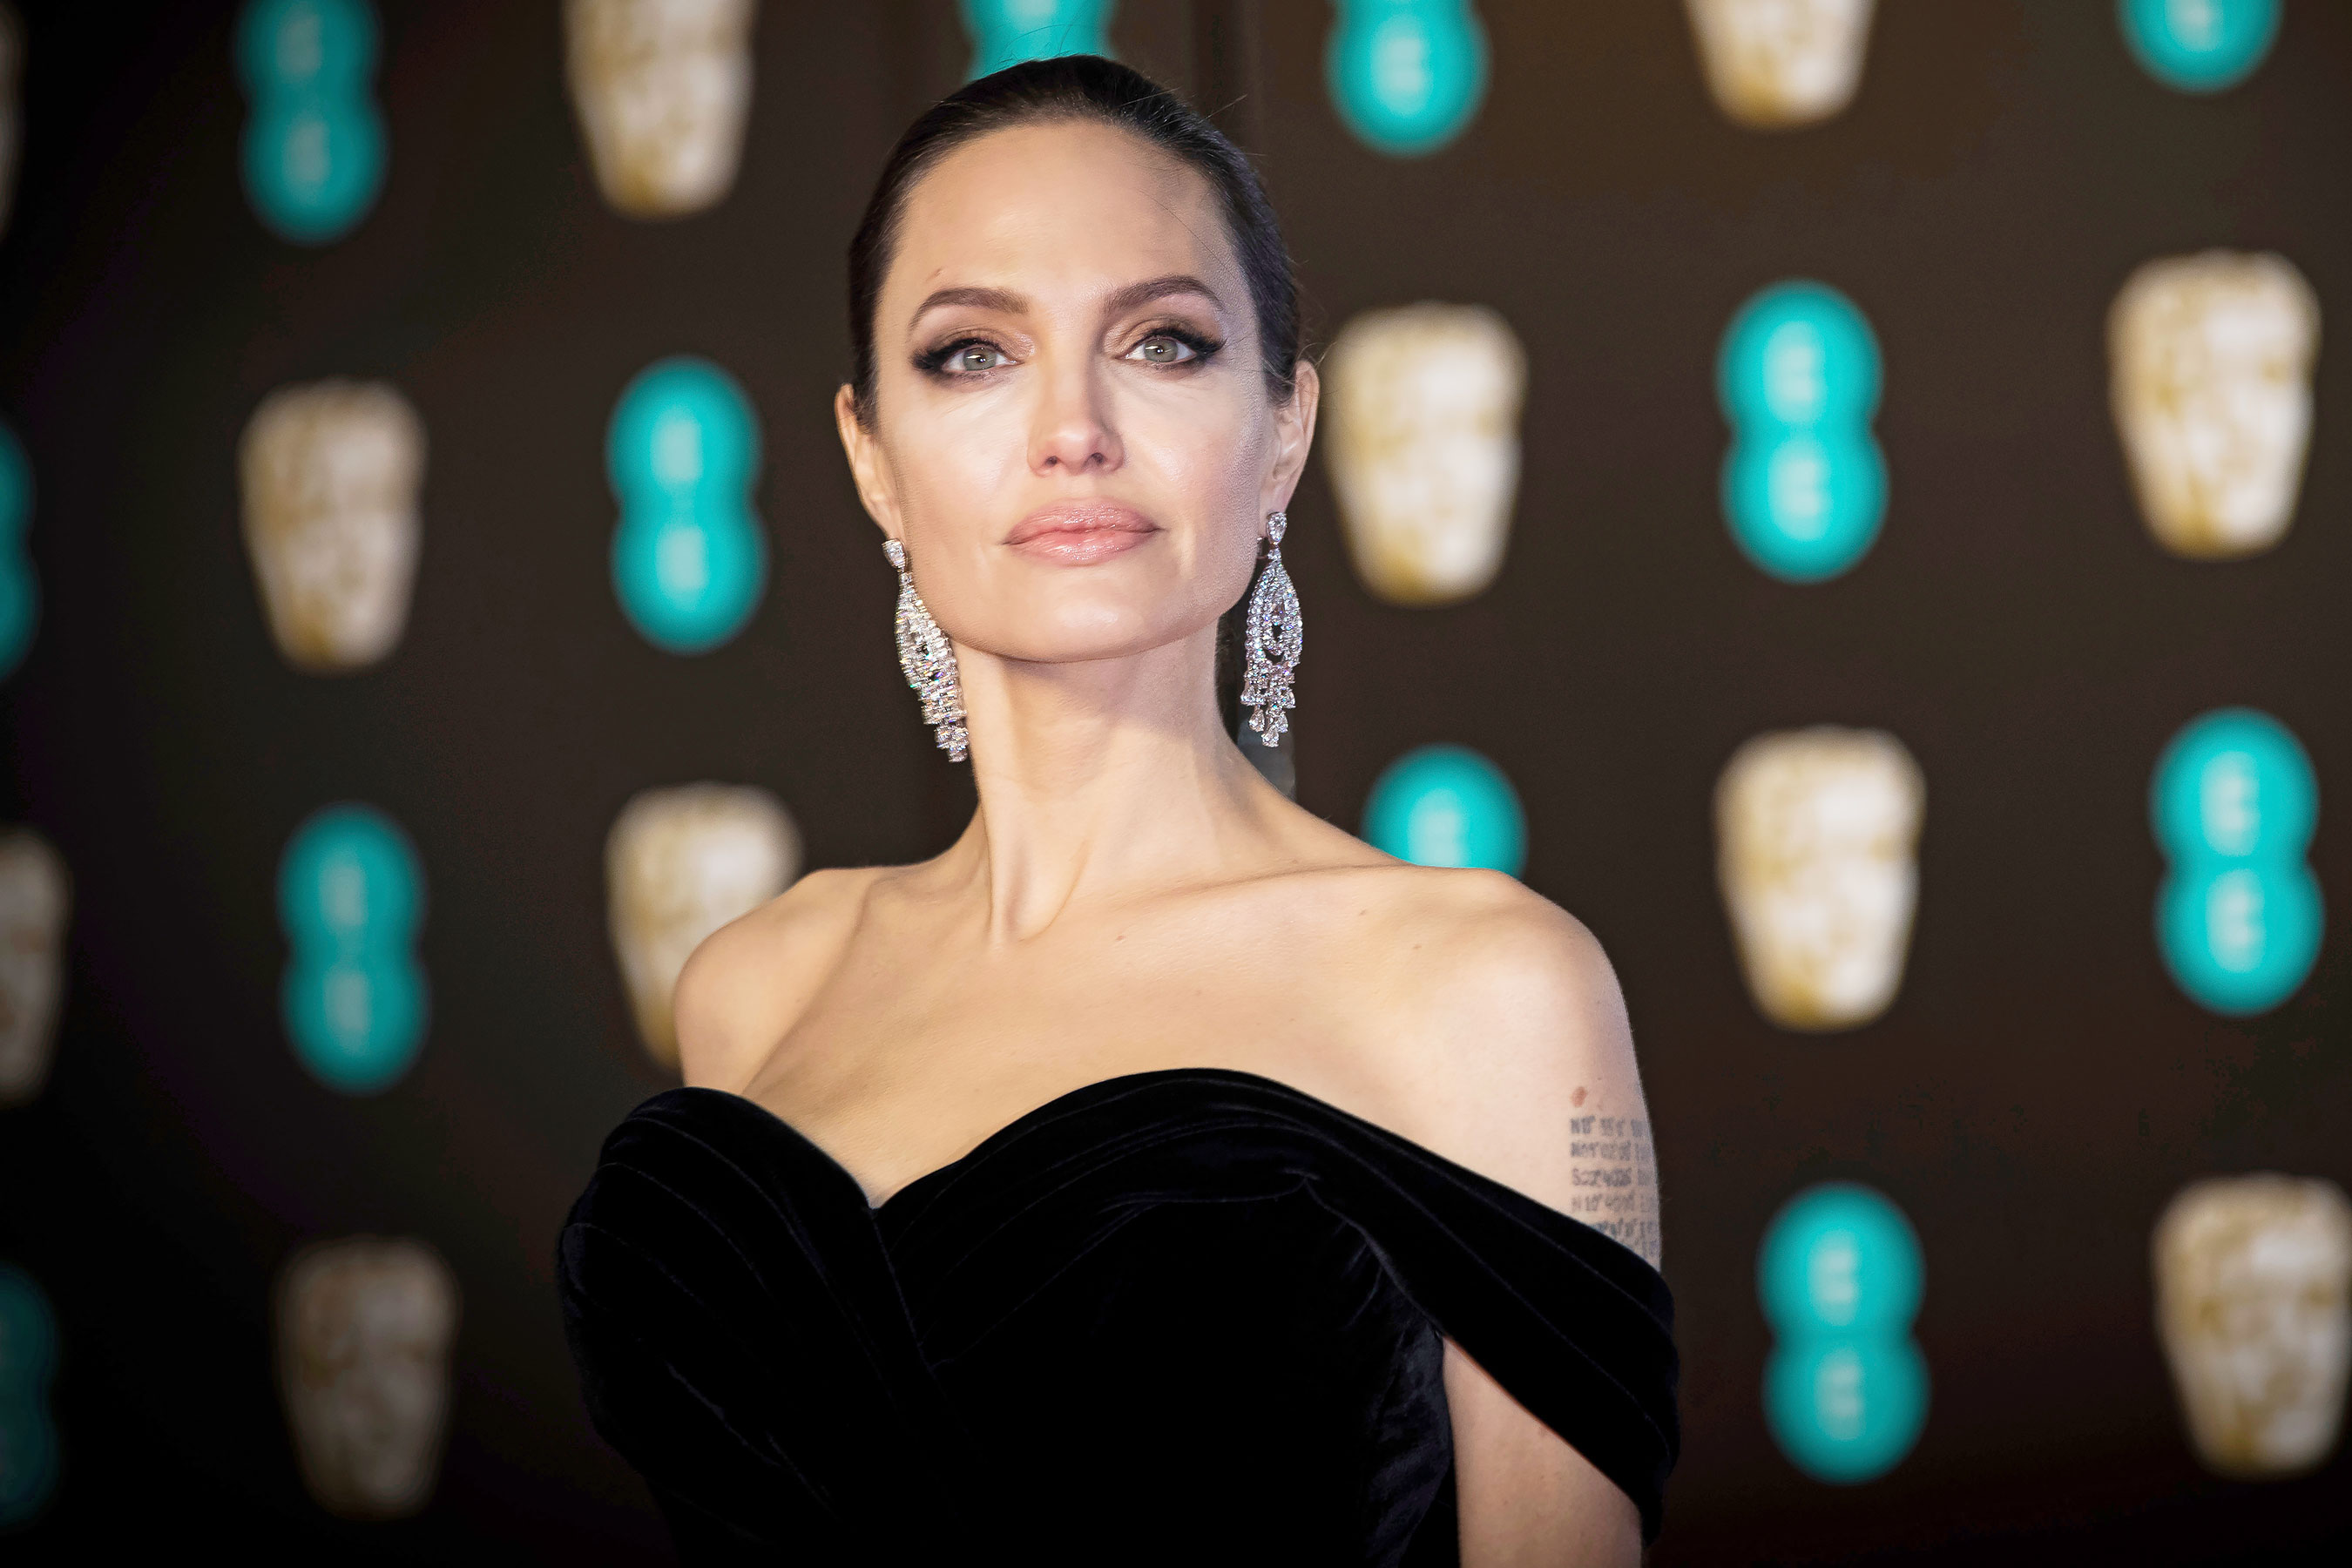 Marvel: The Eternals- will Angelina Jolie be a part of it?